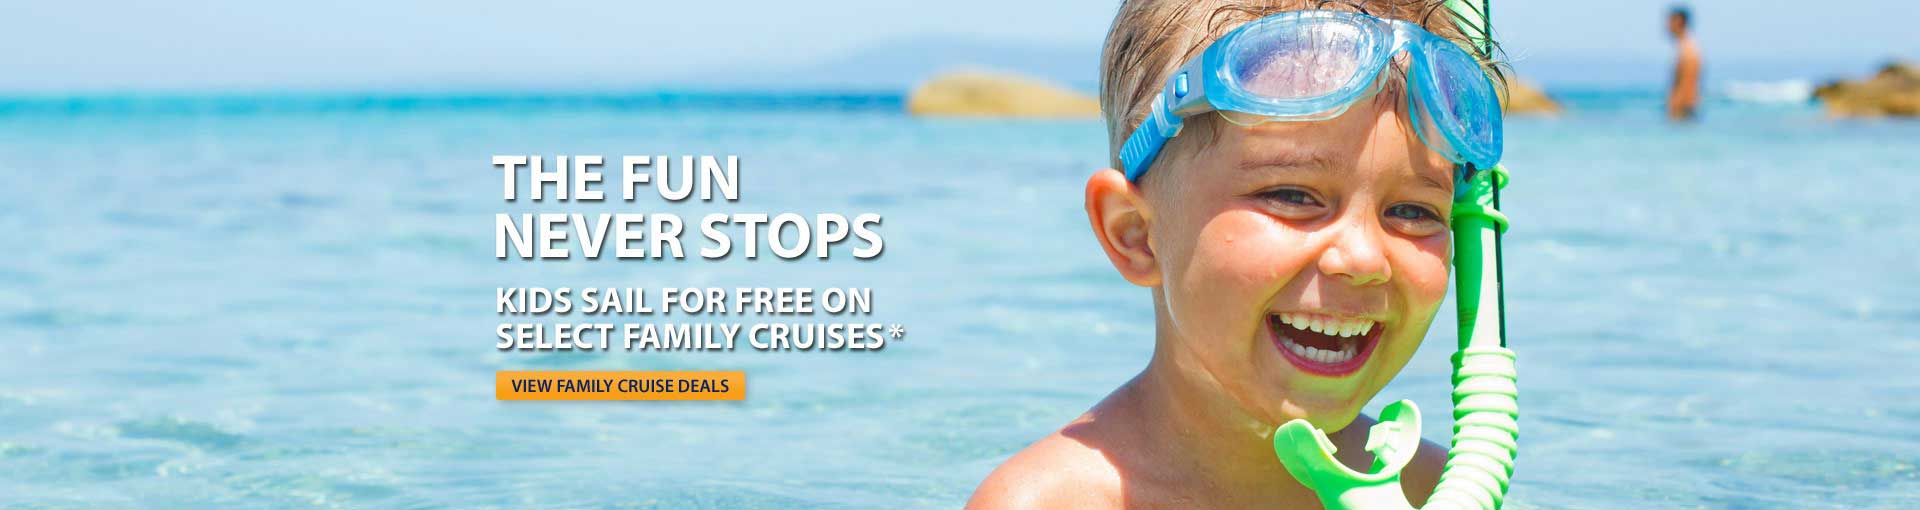 Best Family Cruise Deals